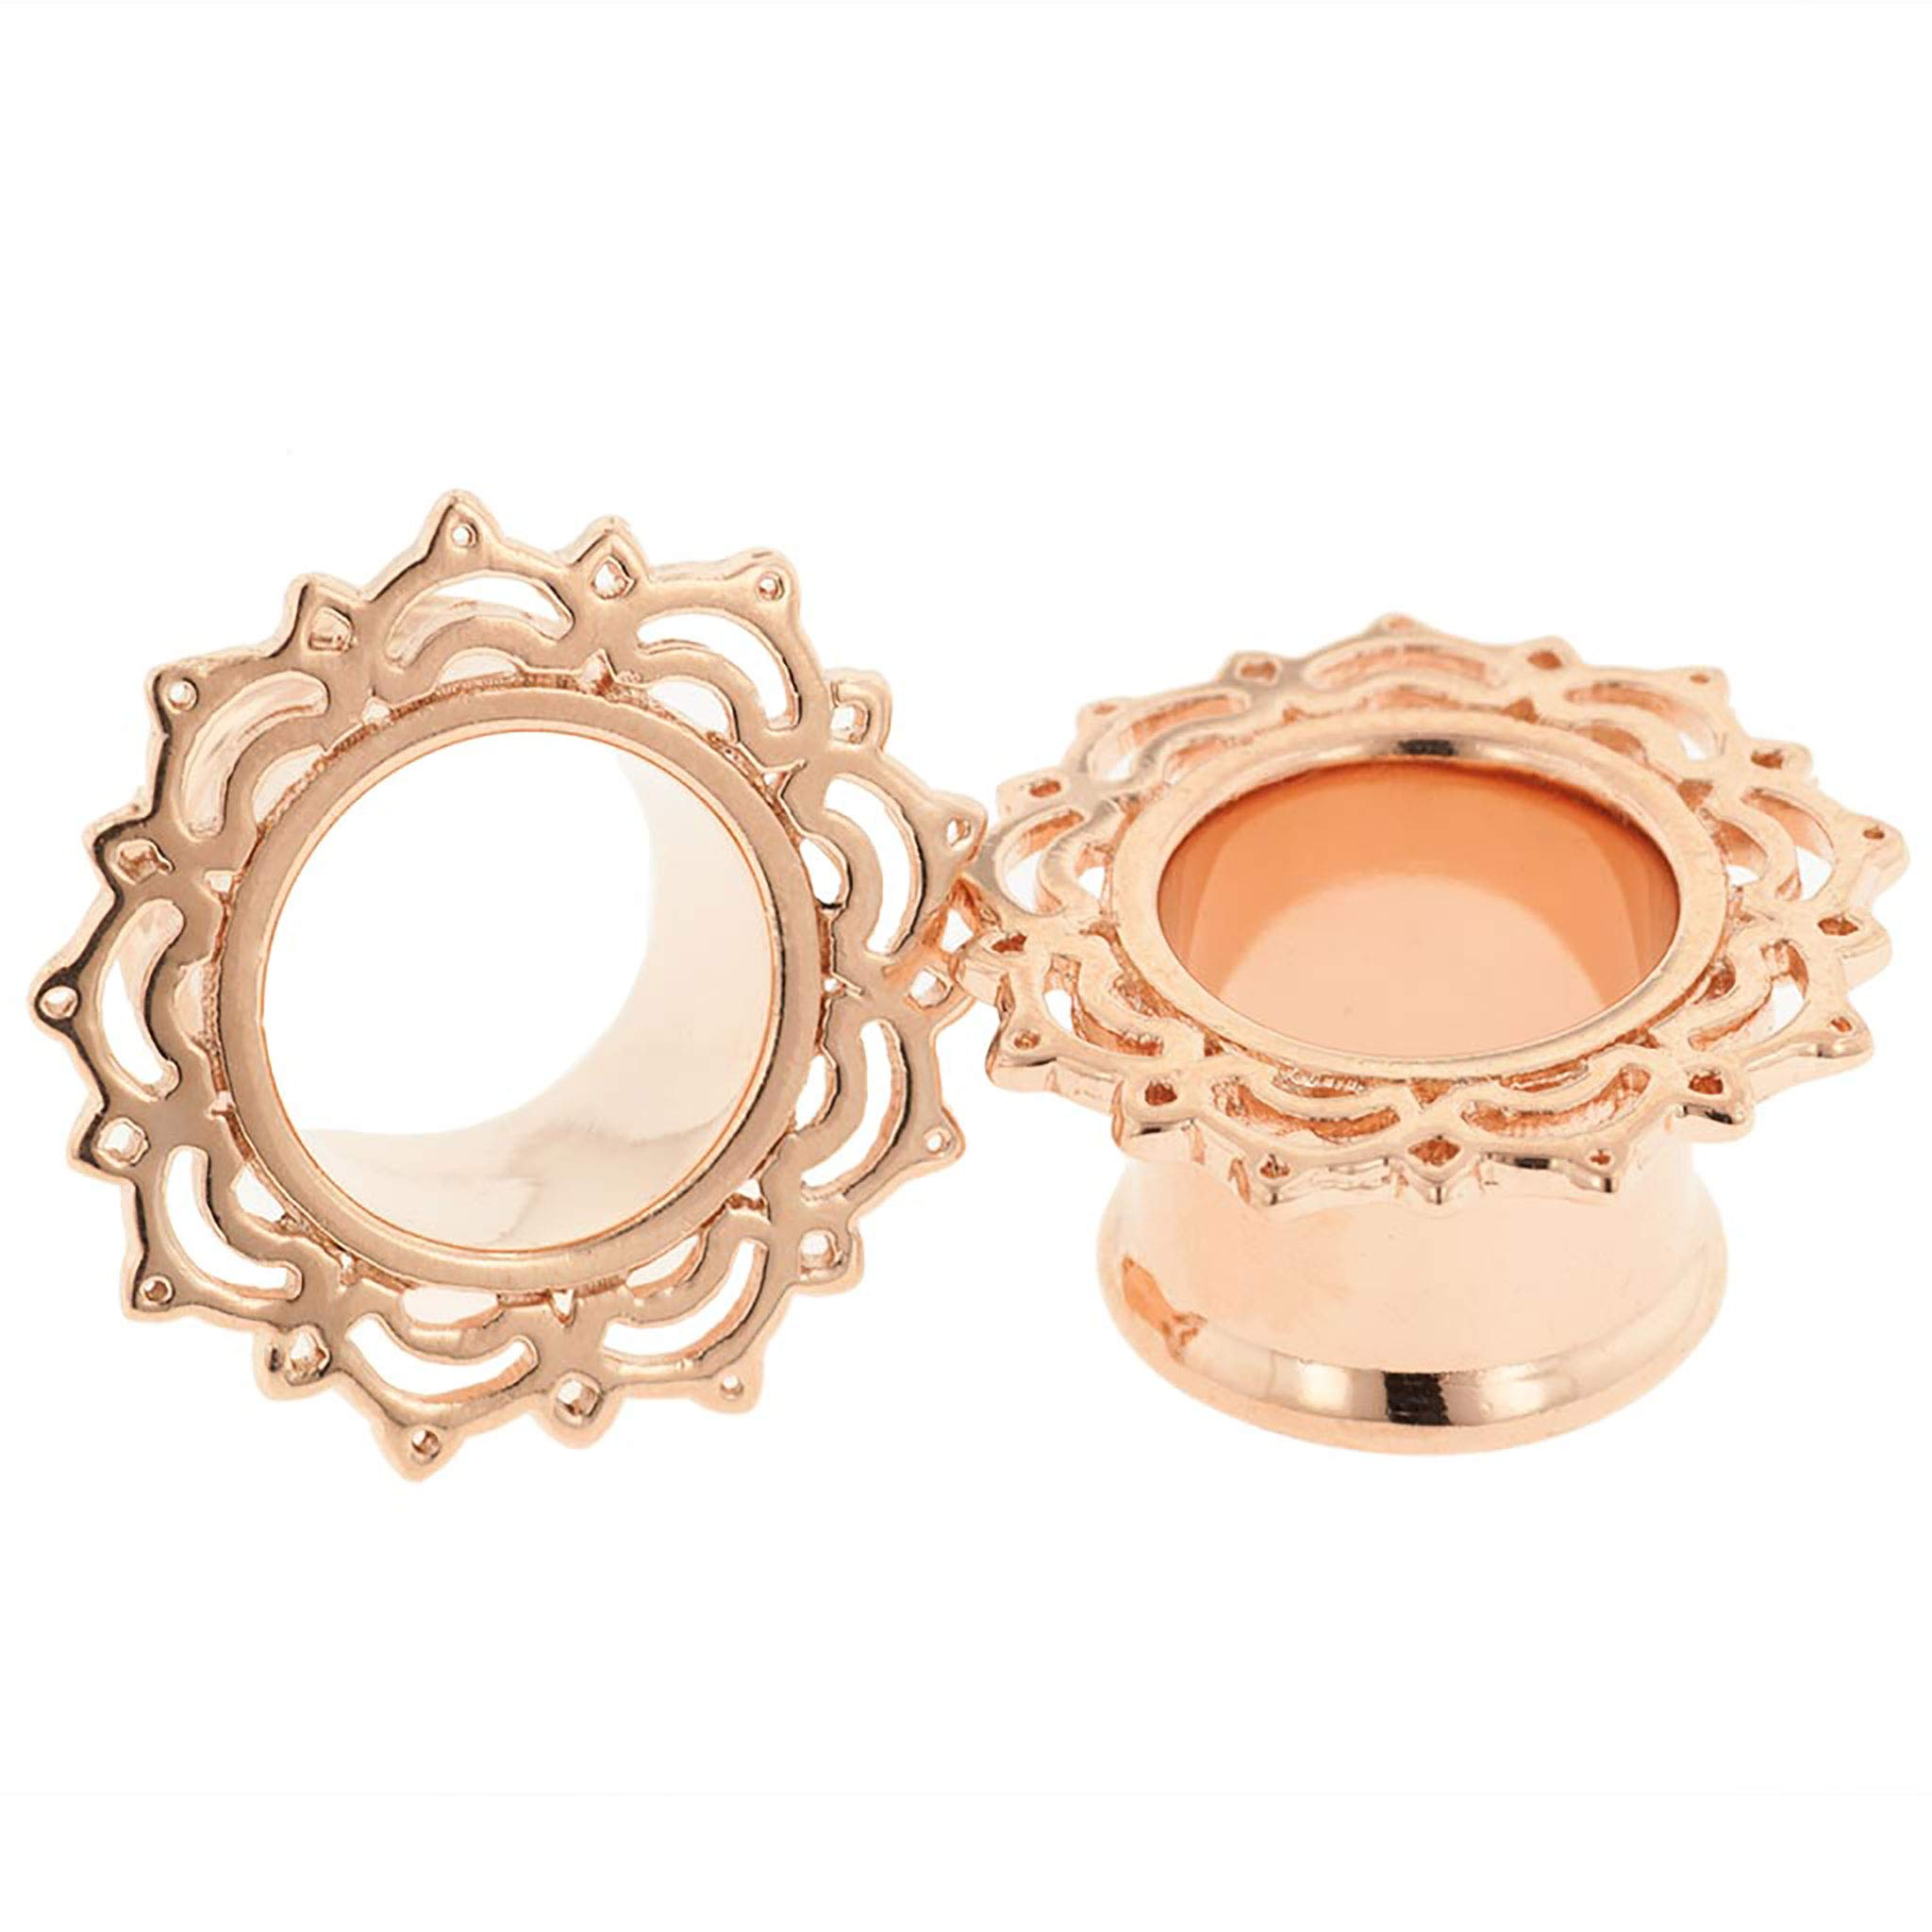 Steel Navel Body Jewelry Pair of Rose Gold Plated Double Flared Lace Lotus Eyelets: 7/16'' by Steel Navel Body Jewelry